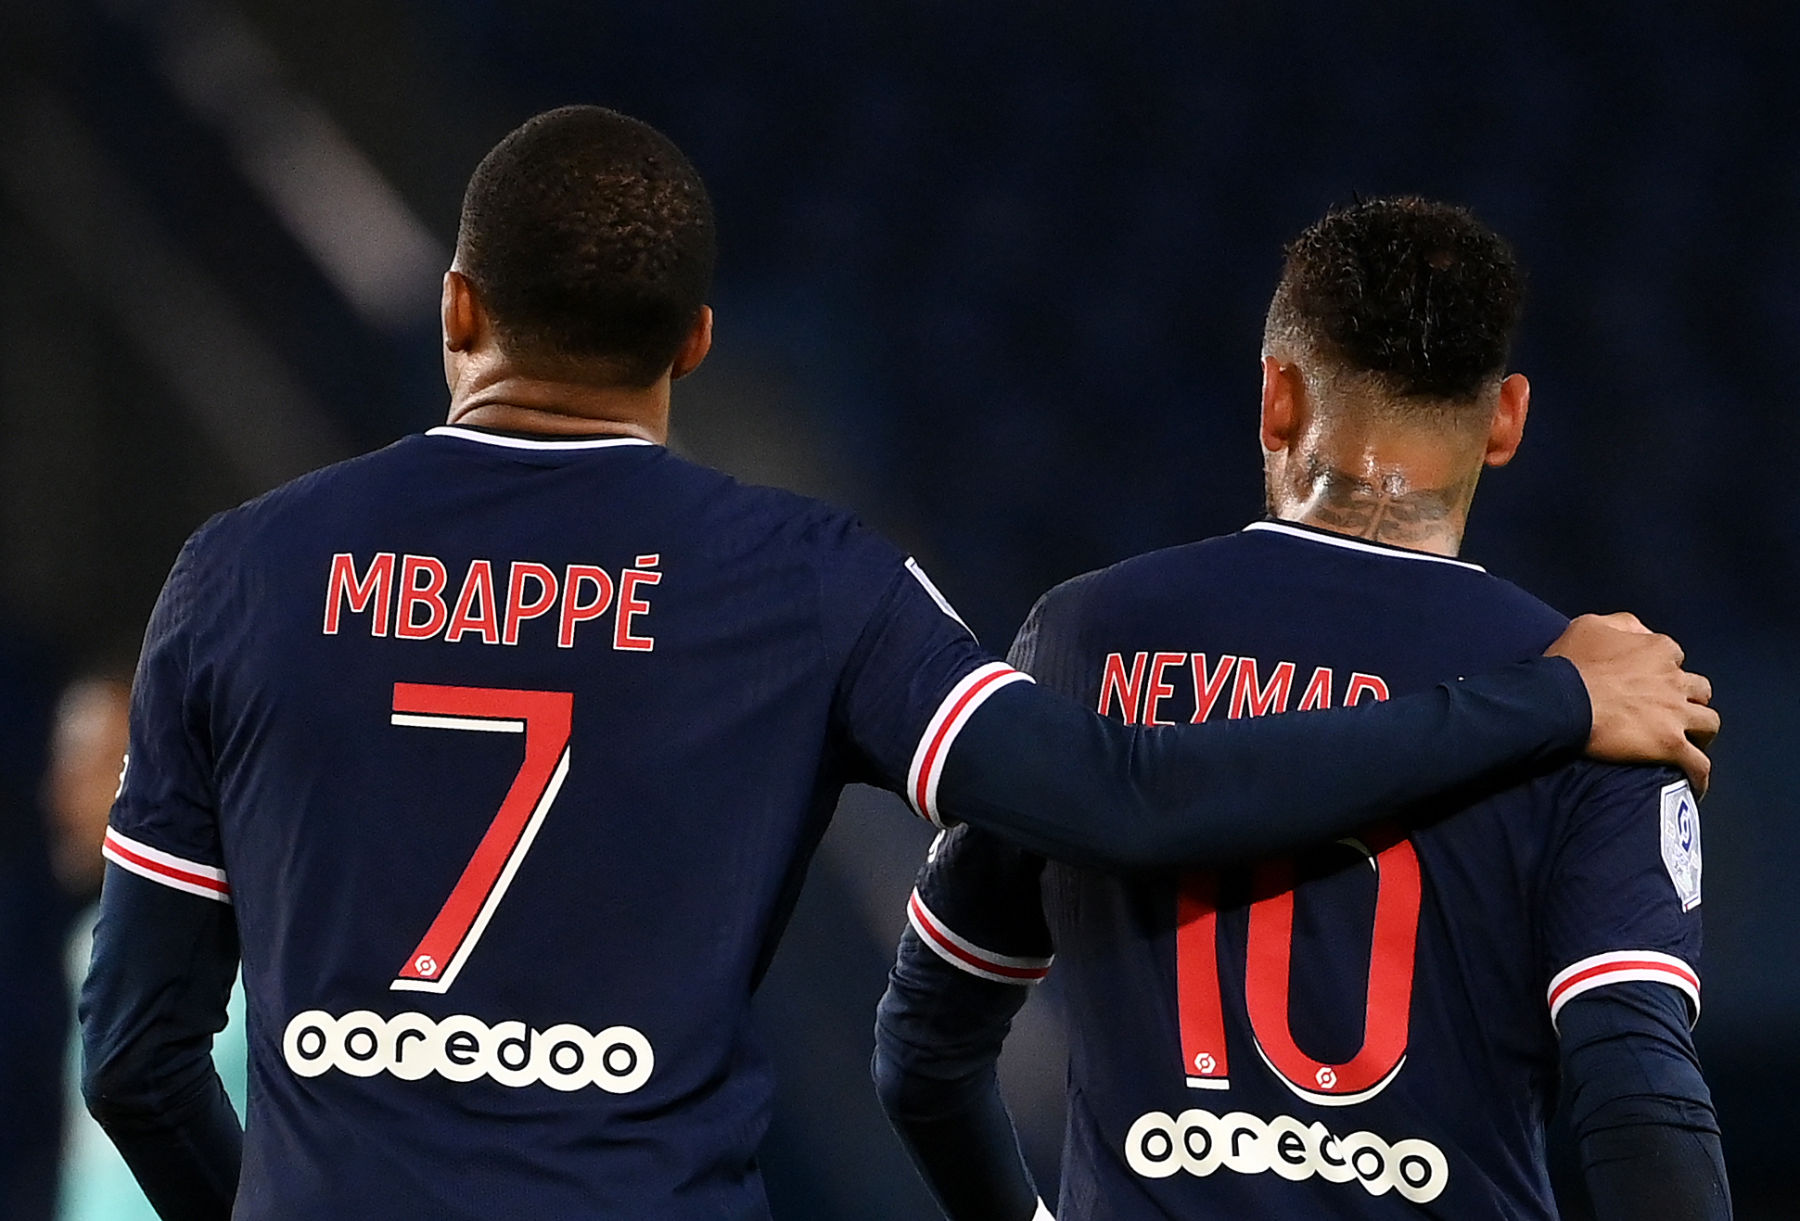 Official Lineup Mbappe And Neymar Lead Psg Against Manchester United In Champions League Psg Talk